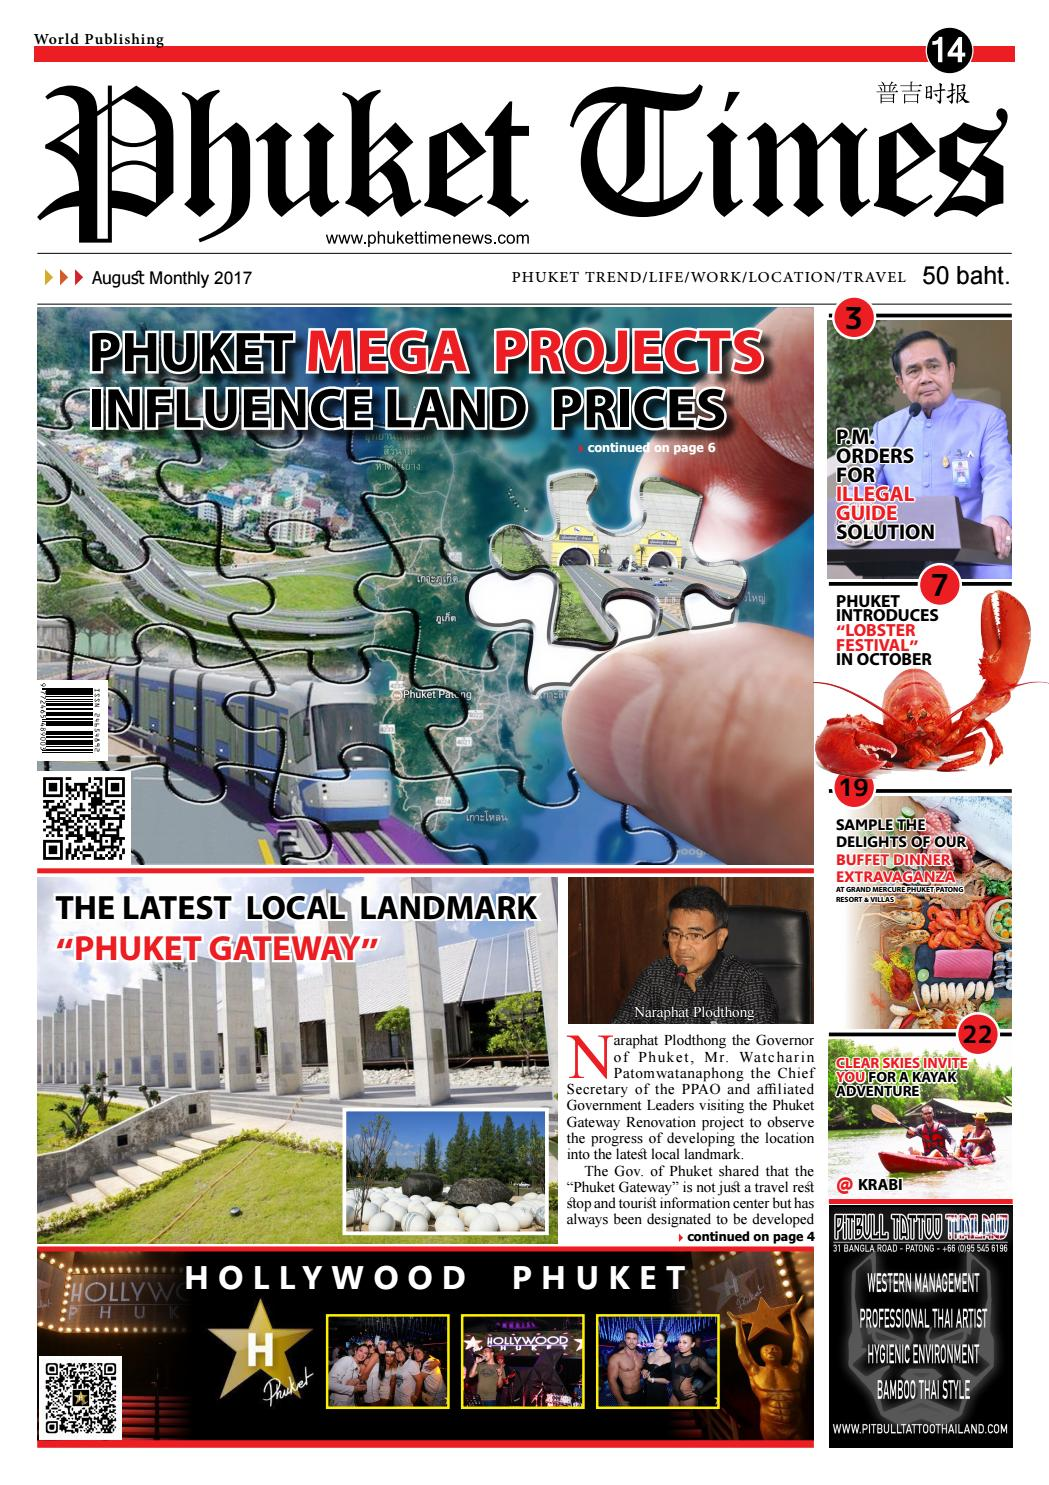 Phuket Times Newspaper No14 July Monthly 2017 By